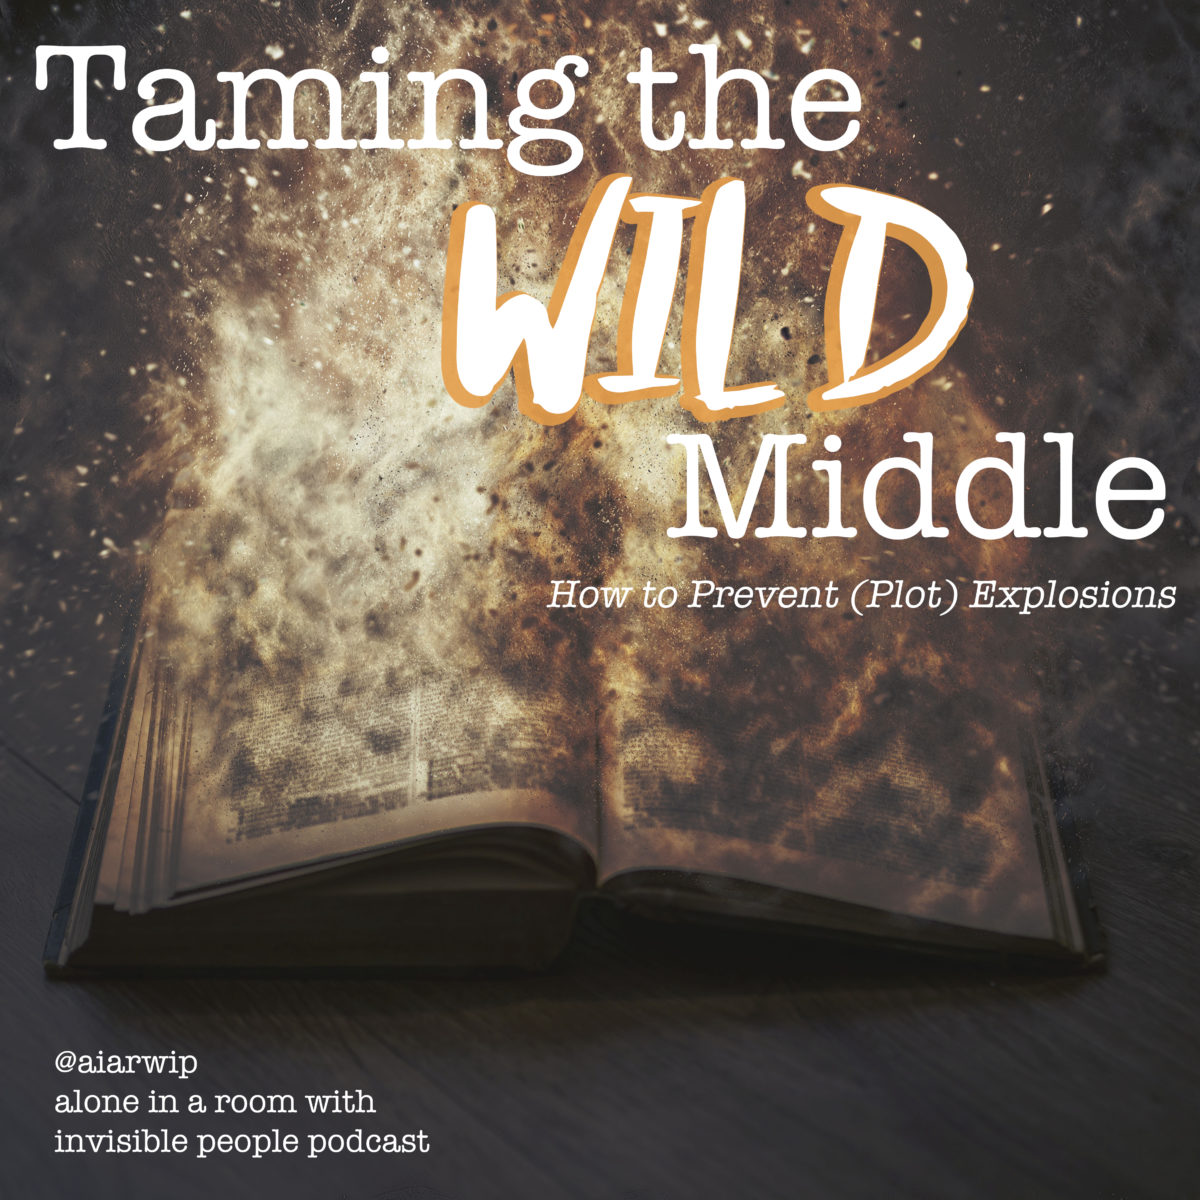 Episode 51: Taming the Wild Middle – How to Prevent (Plot) Explosions